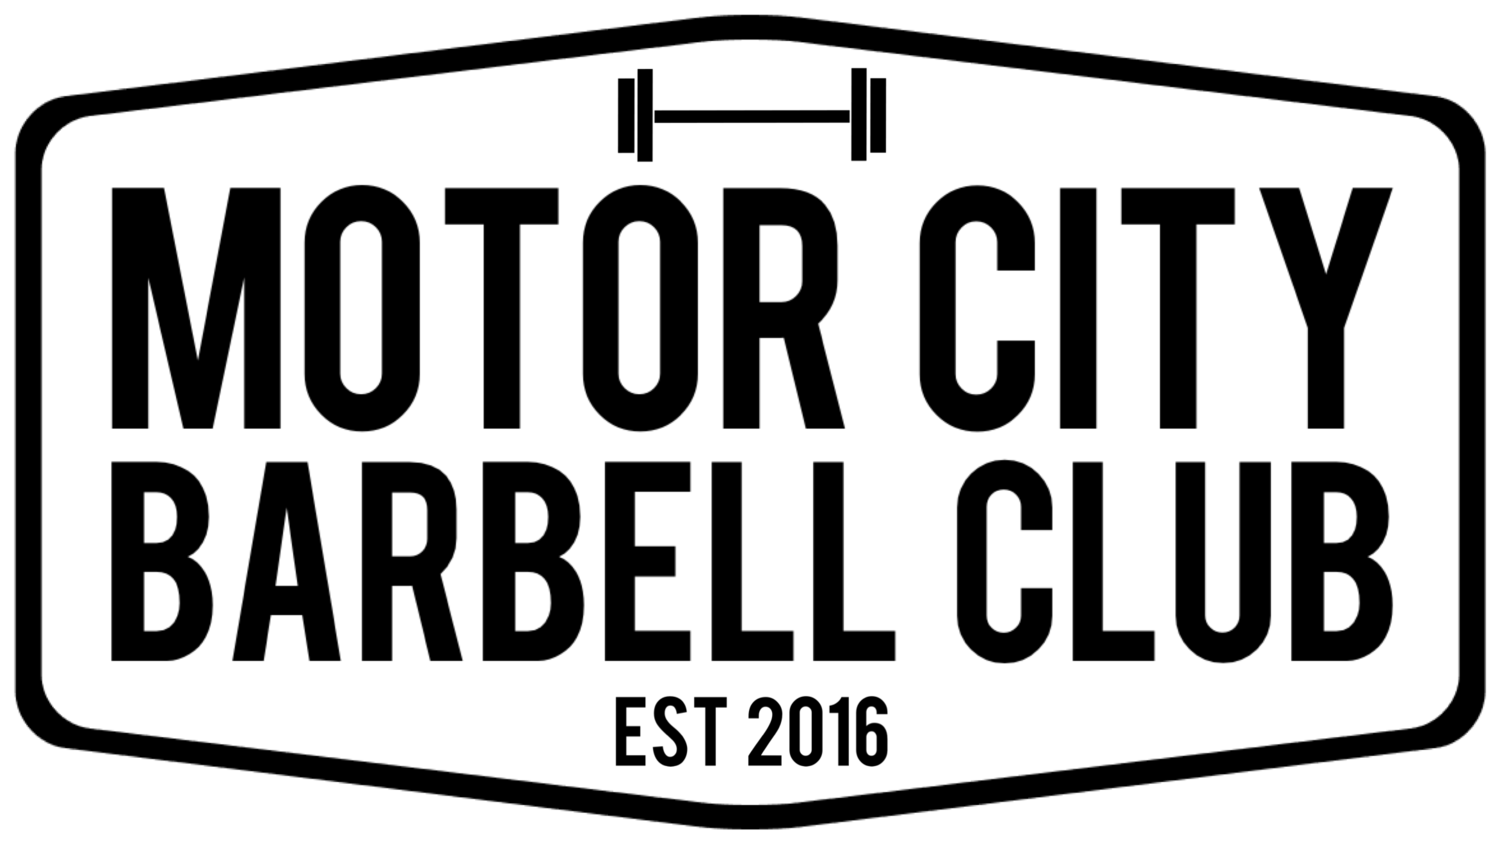 Motor City Barbell and Fitness Club